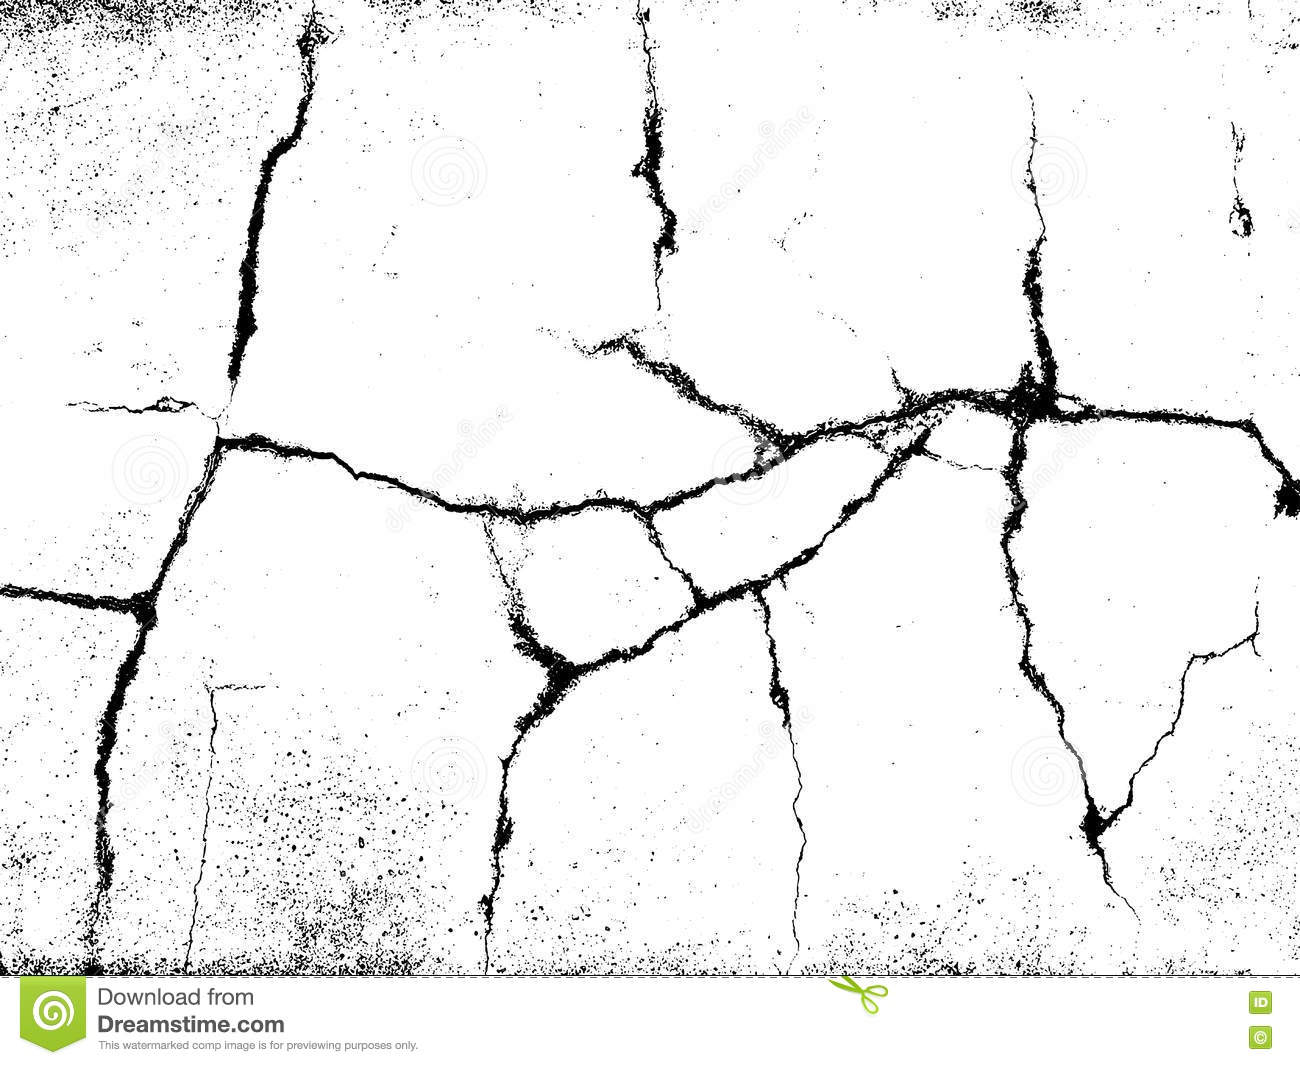 Cracks Texture Overlay Vector Background Stock Vector